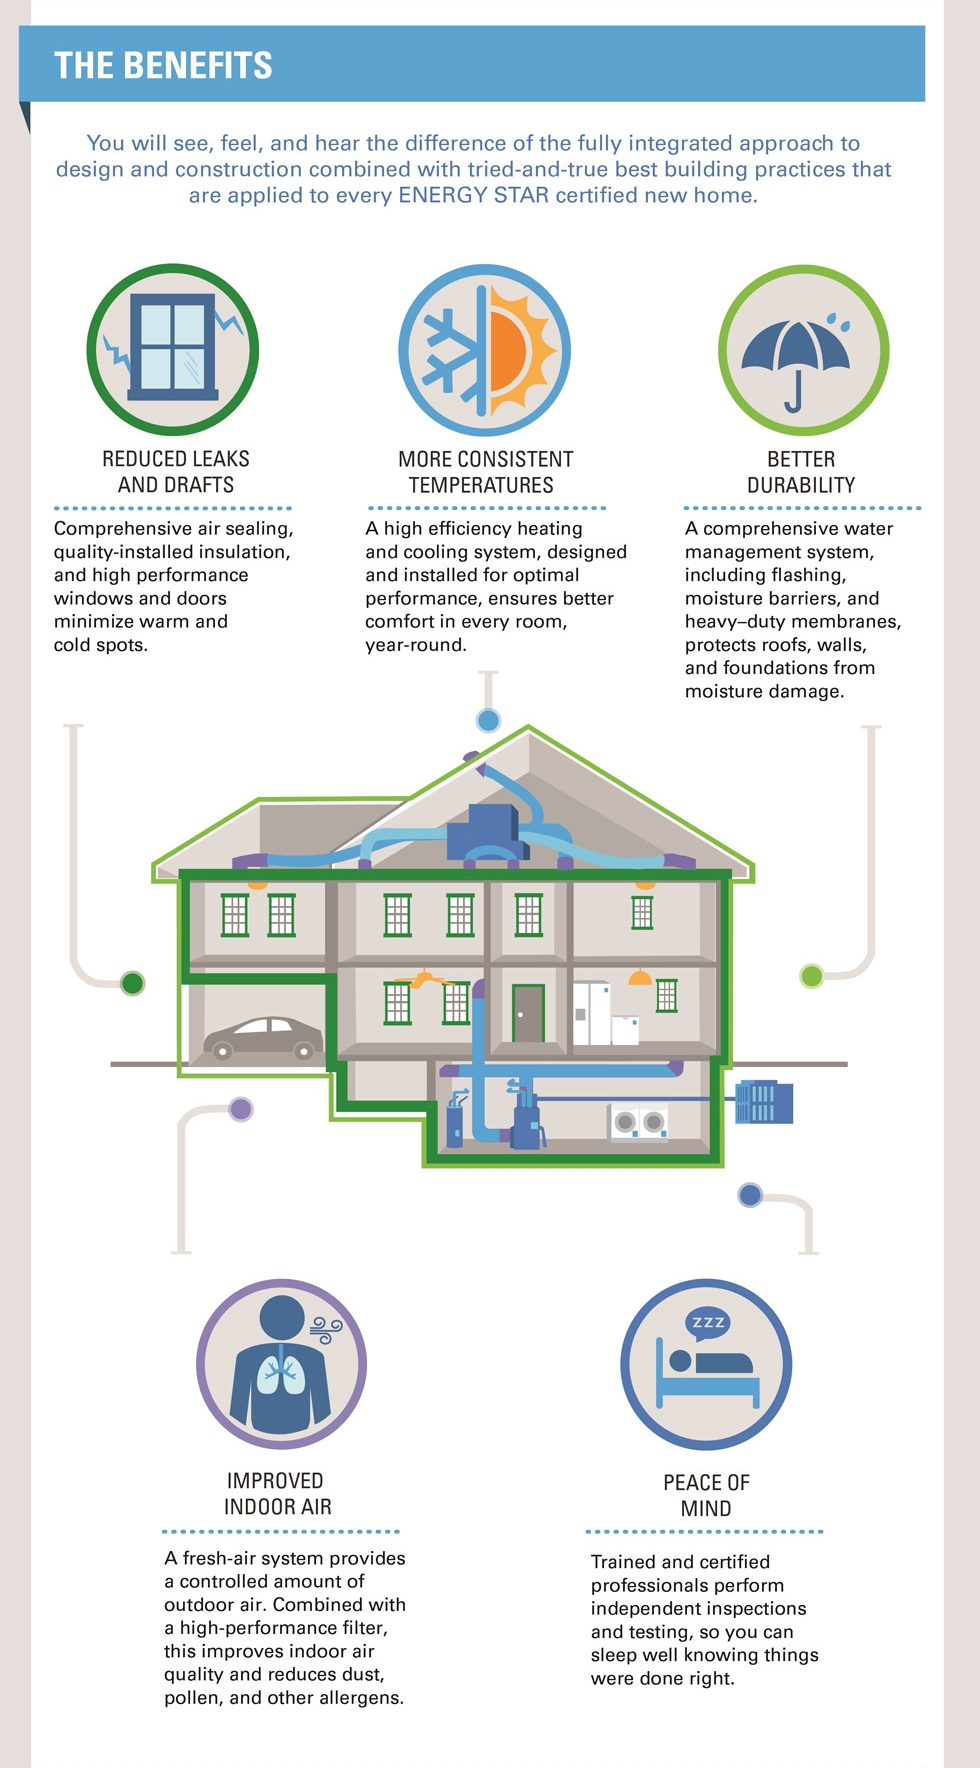 The Benefits of an ENERGY STAR New Home